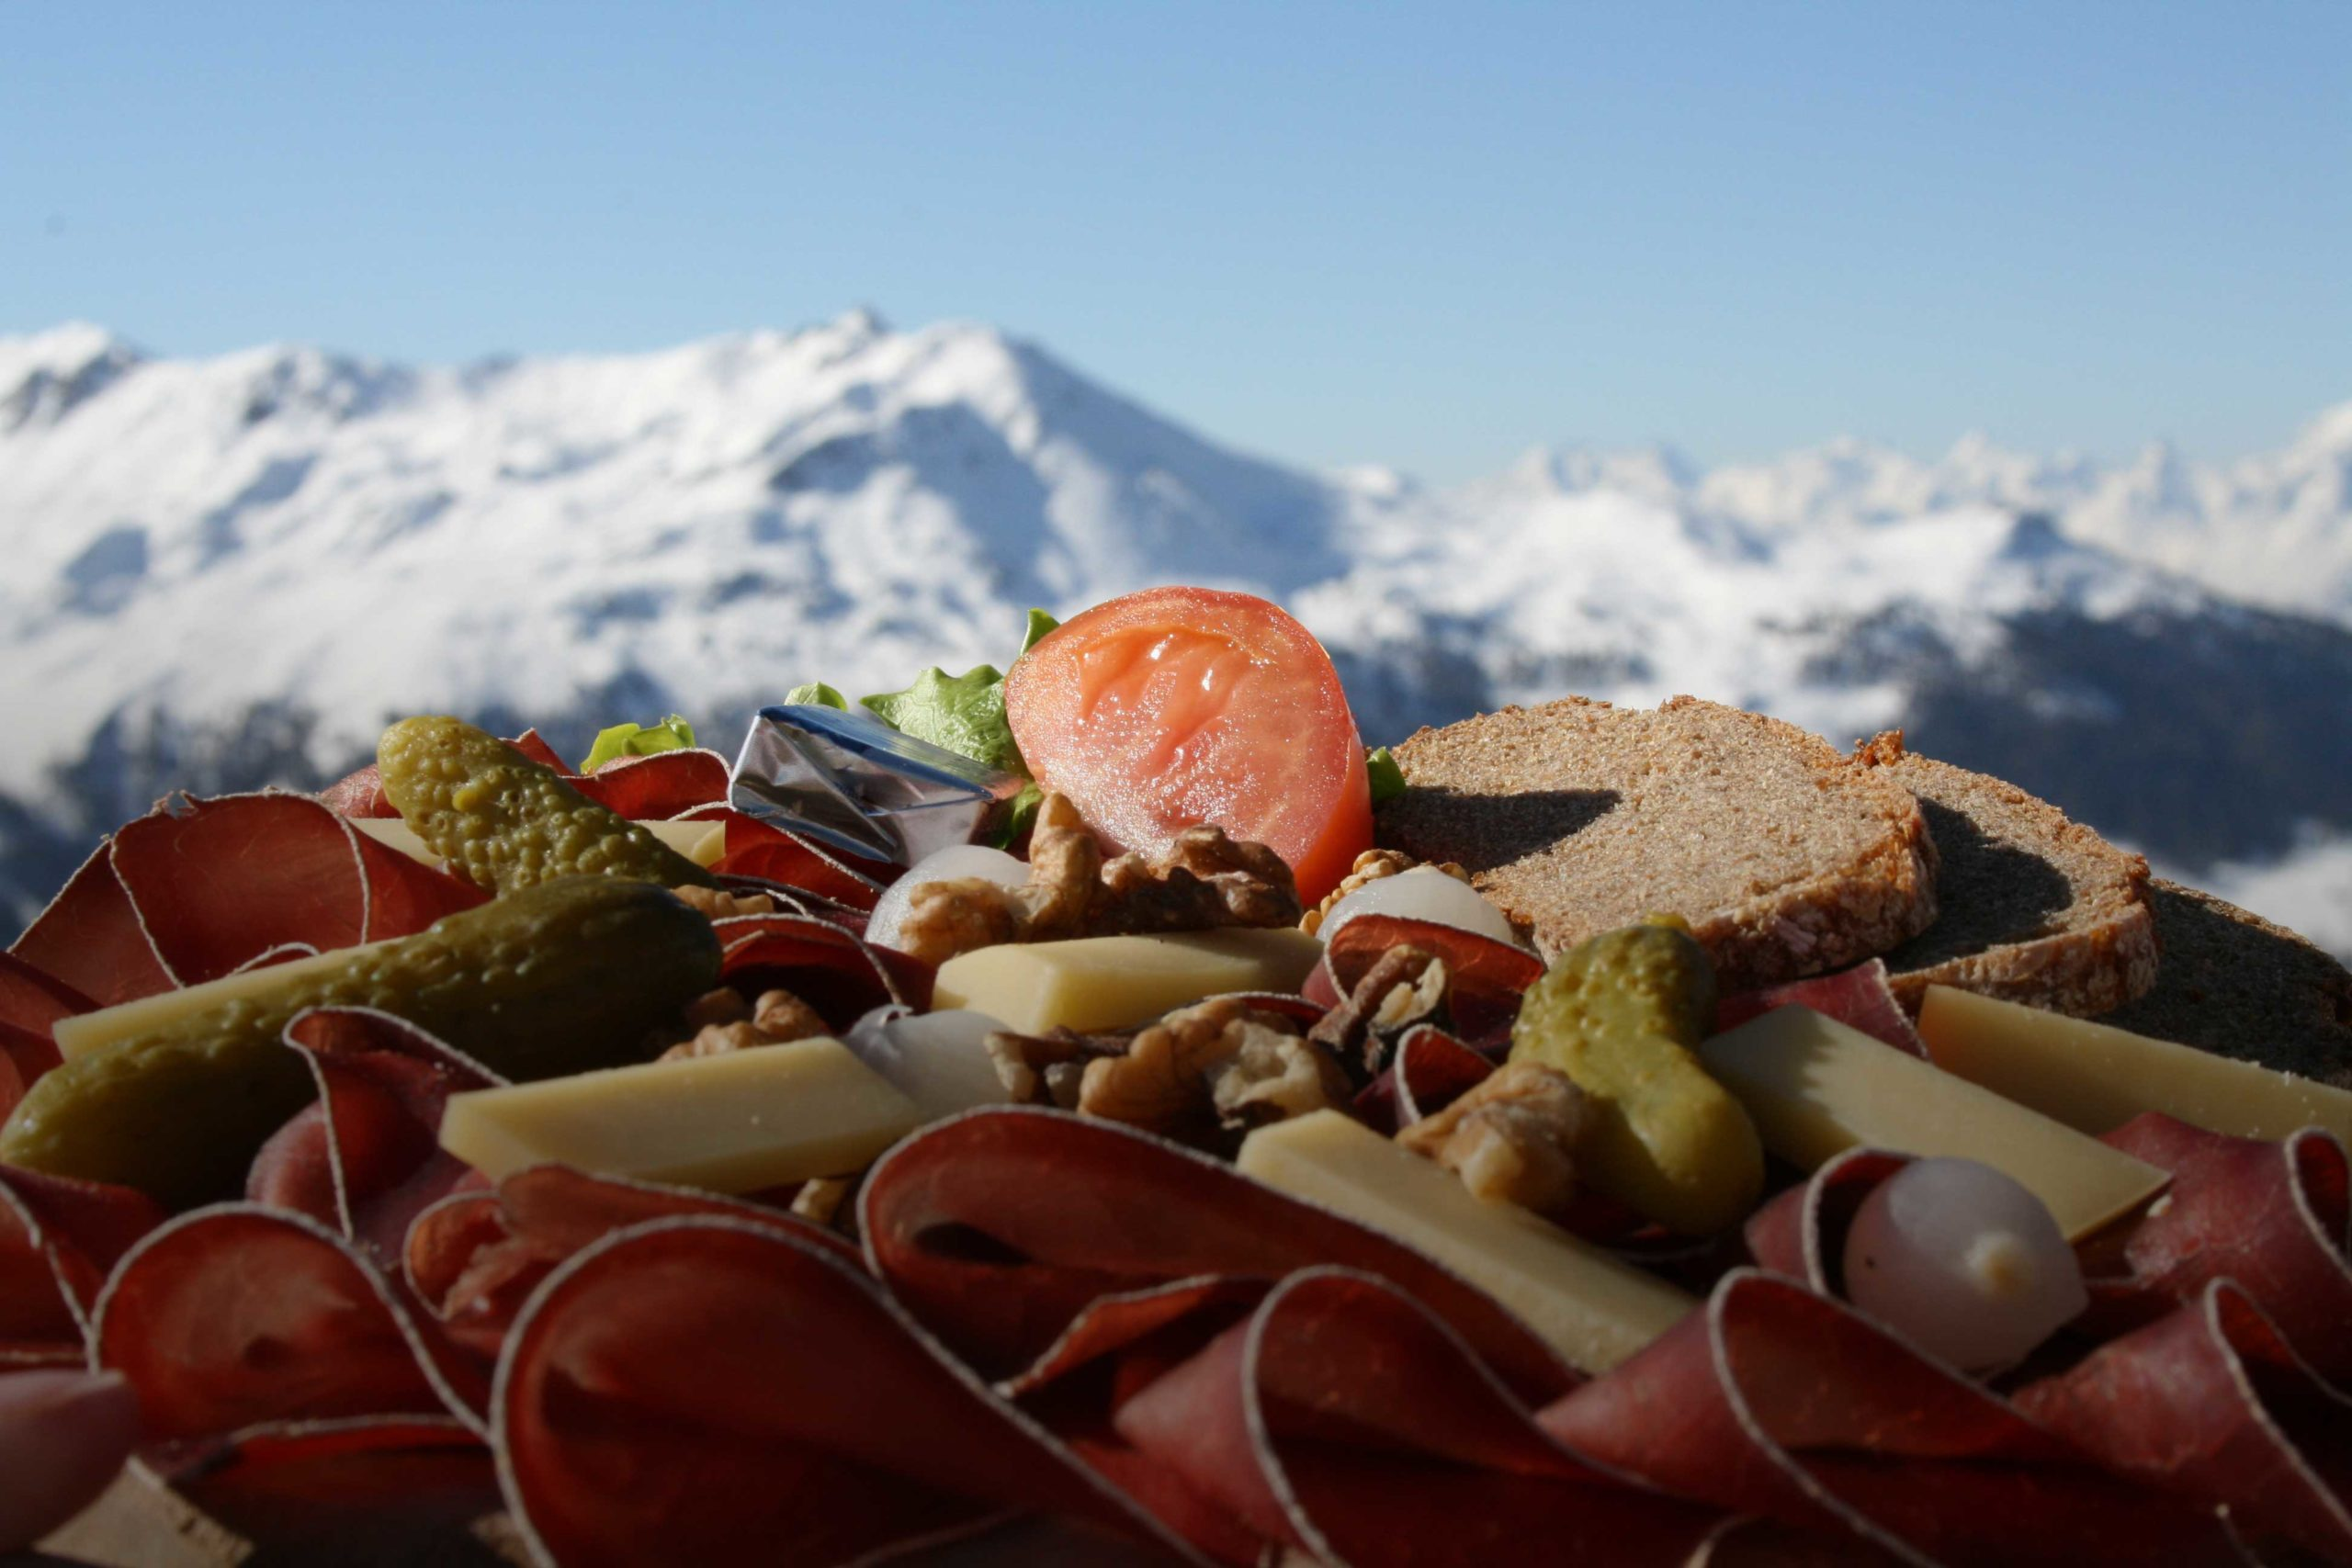 Experience moments of joy with an exceptional view, with our swiss cuisine in front of the mountains